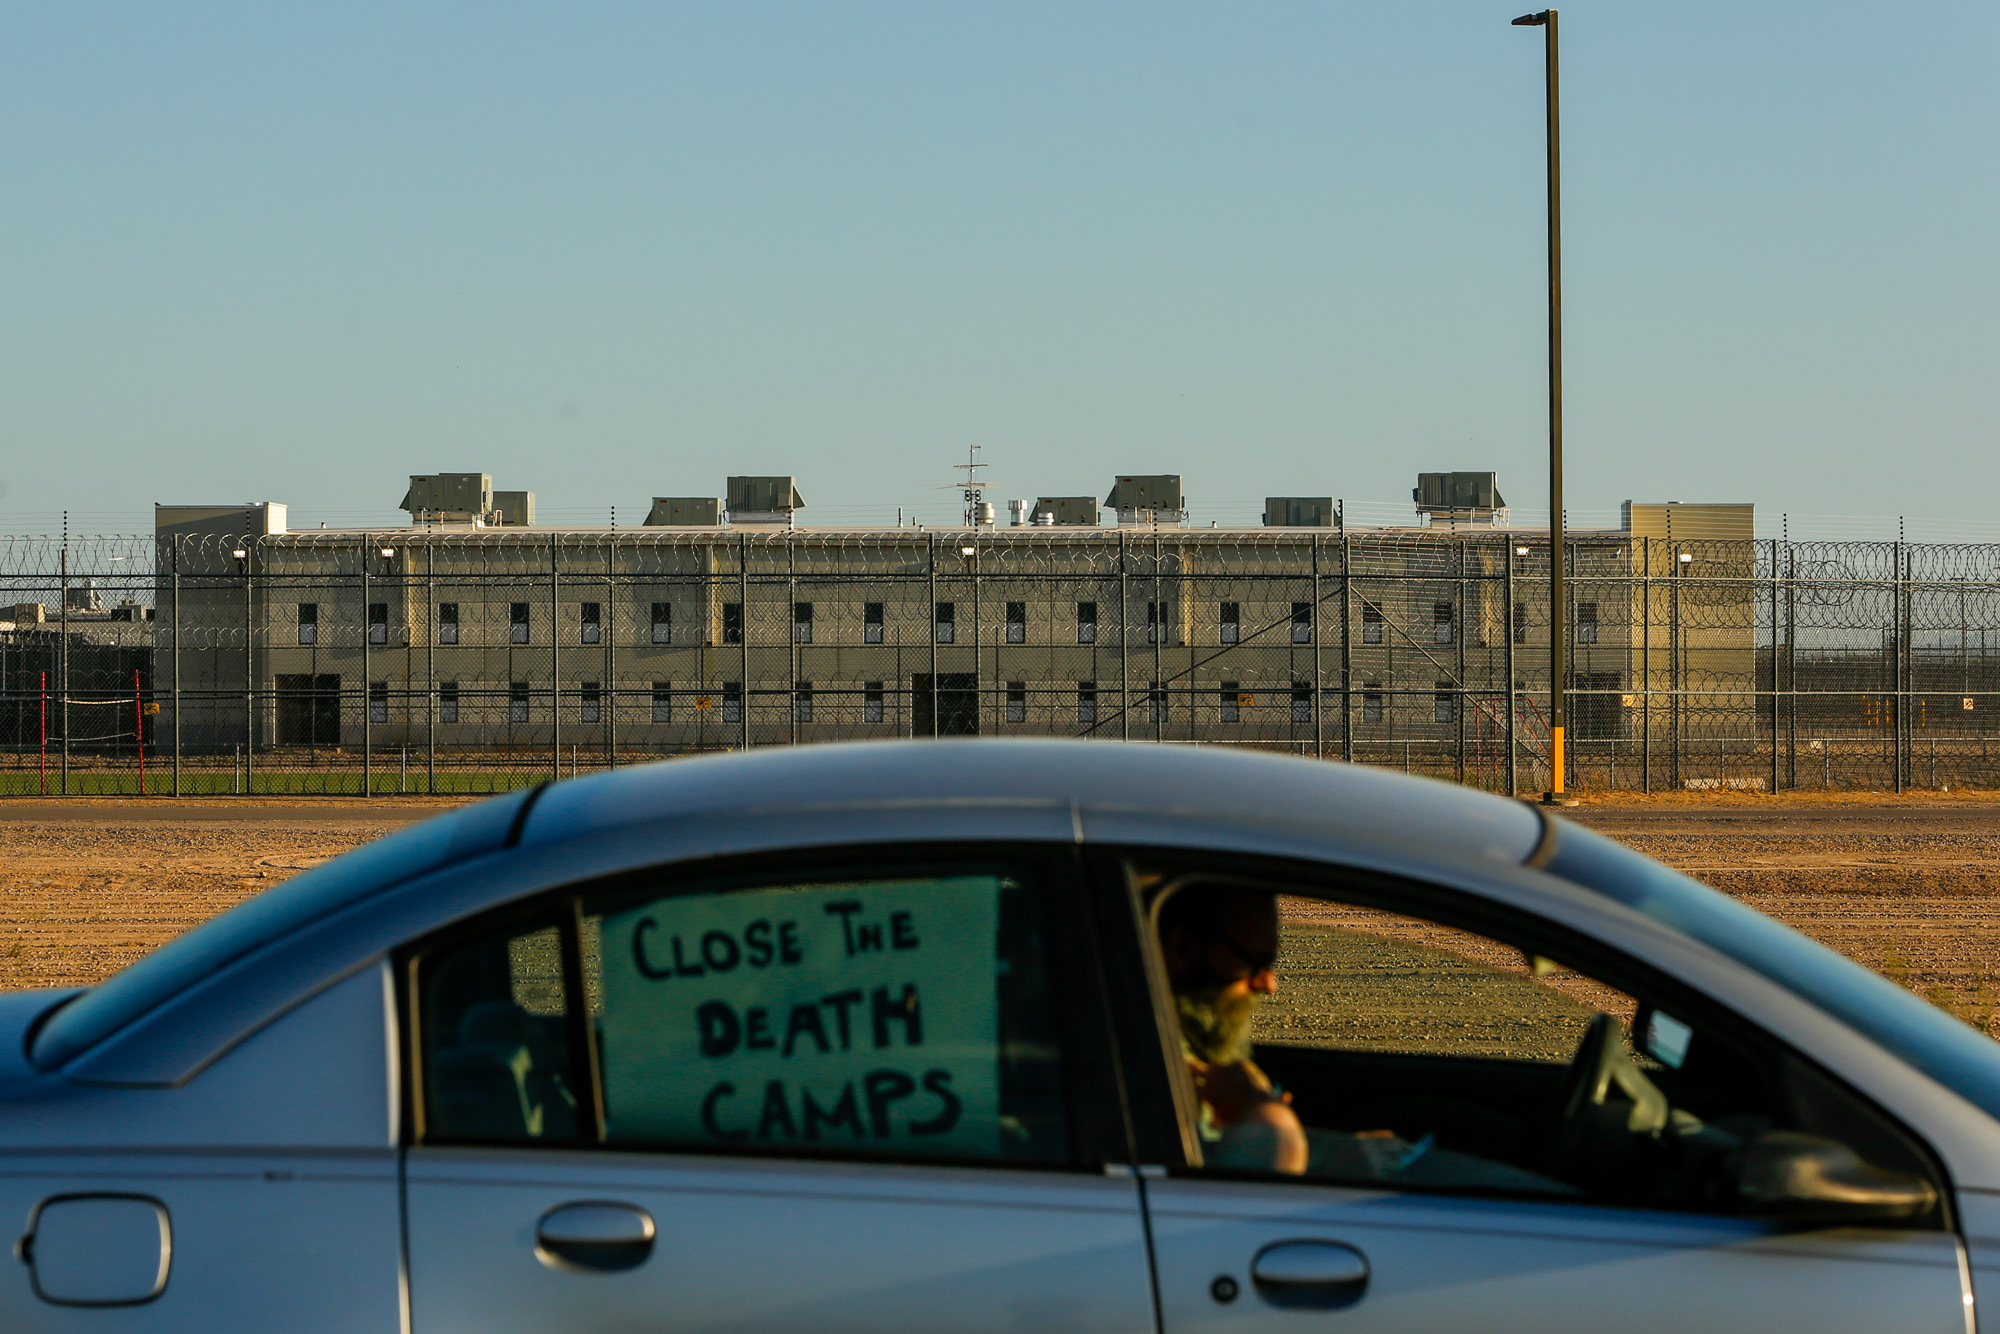 Tensions skyrocket as COVID-19 fears grip Arizona detention center